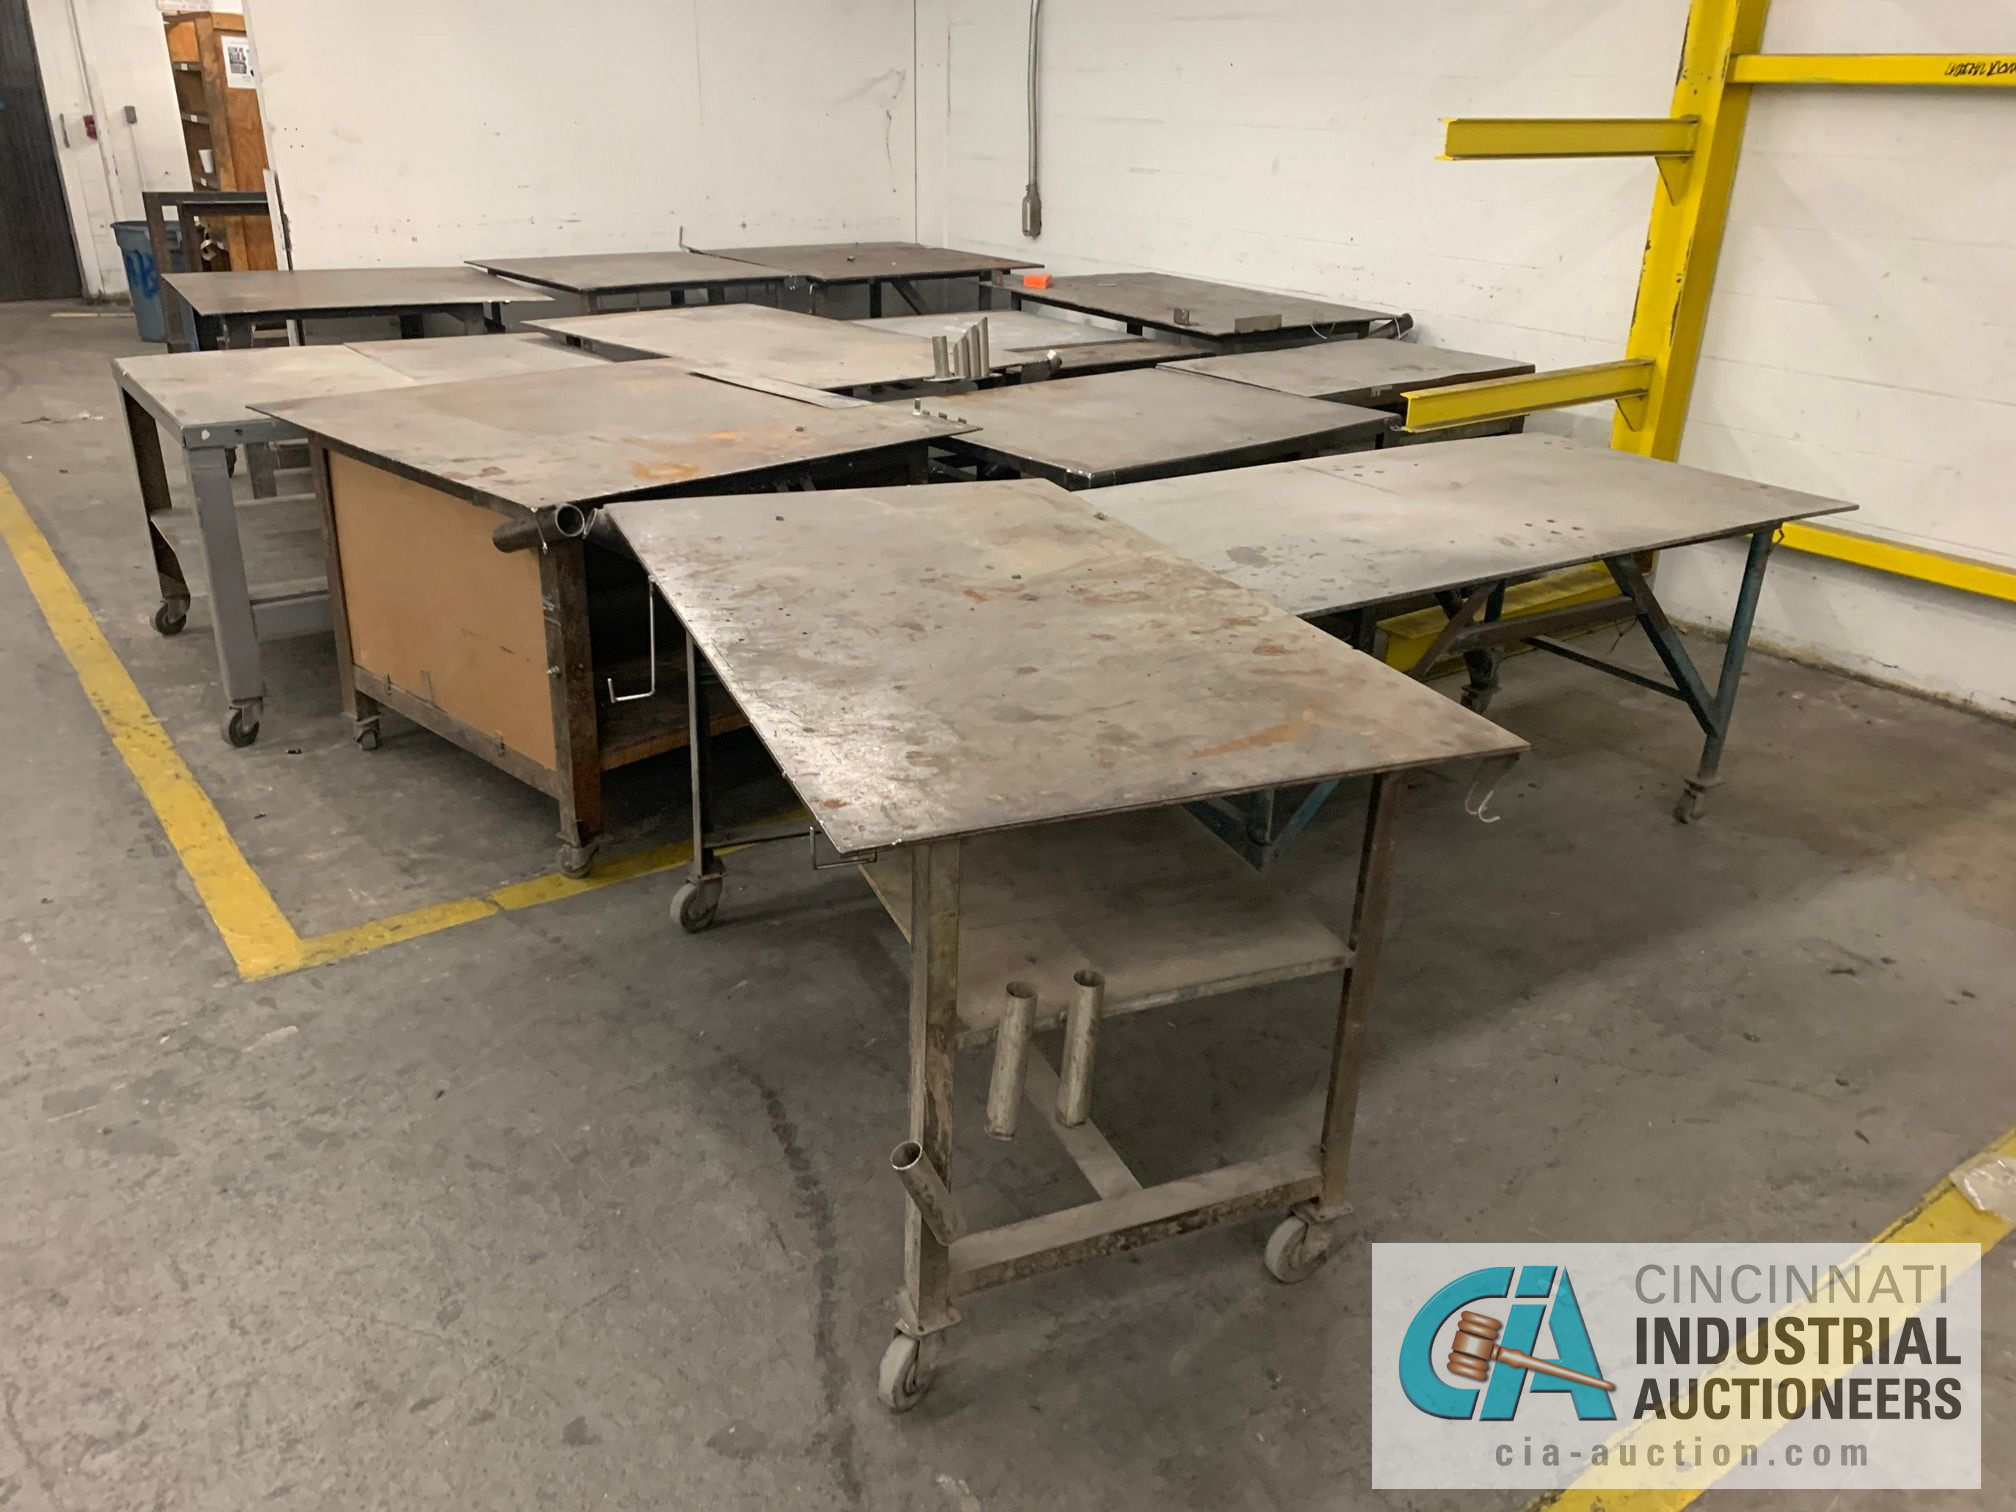 VARIOUS HEAVY DUTY CARTS, SOME SET-UP TO BE HEAVY WELD TABLES - Image 5 of 5